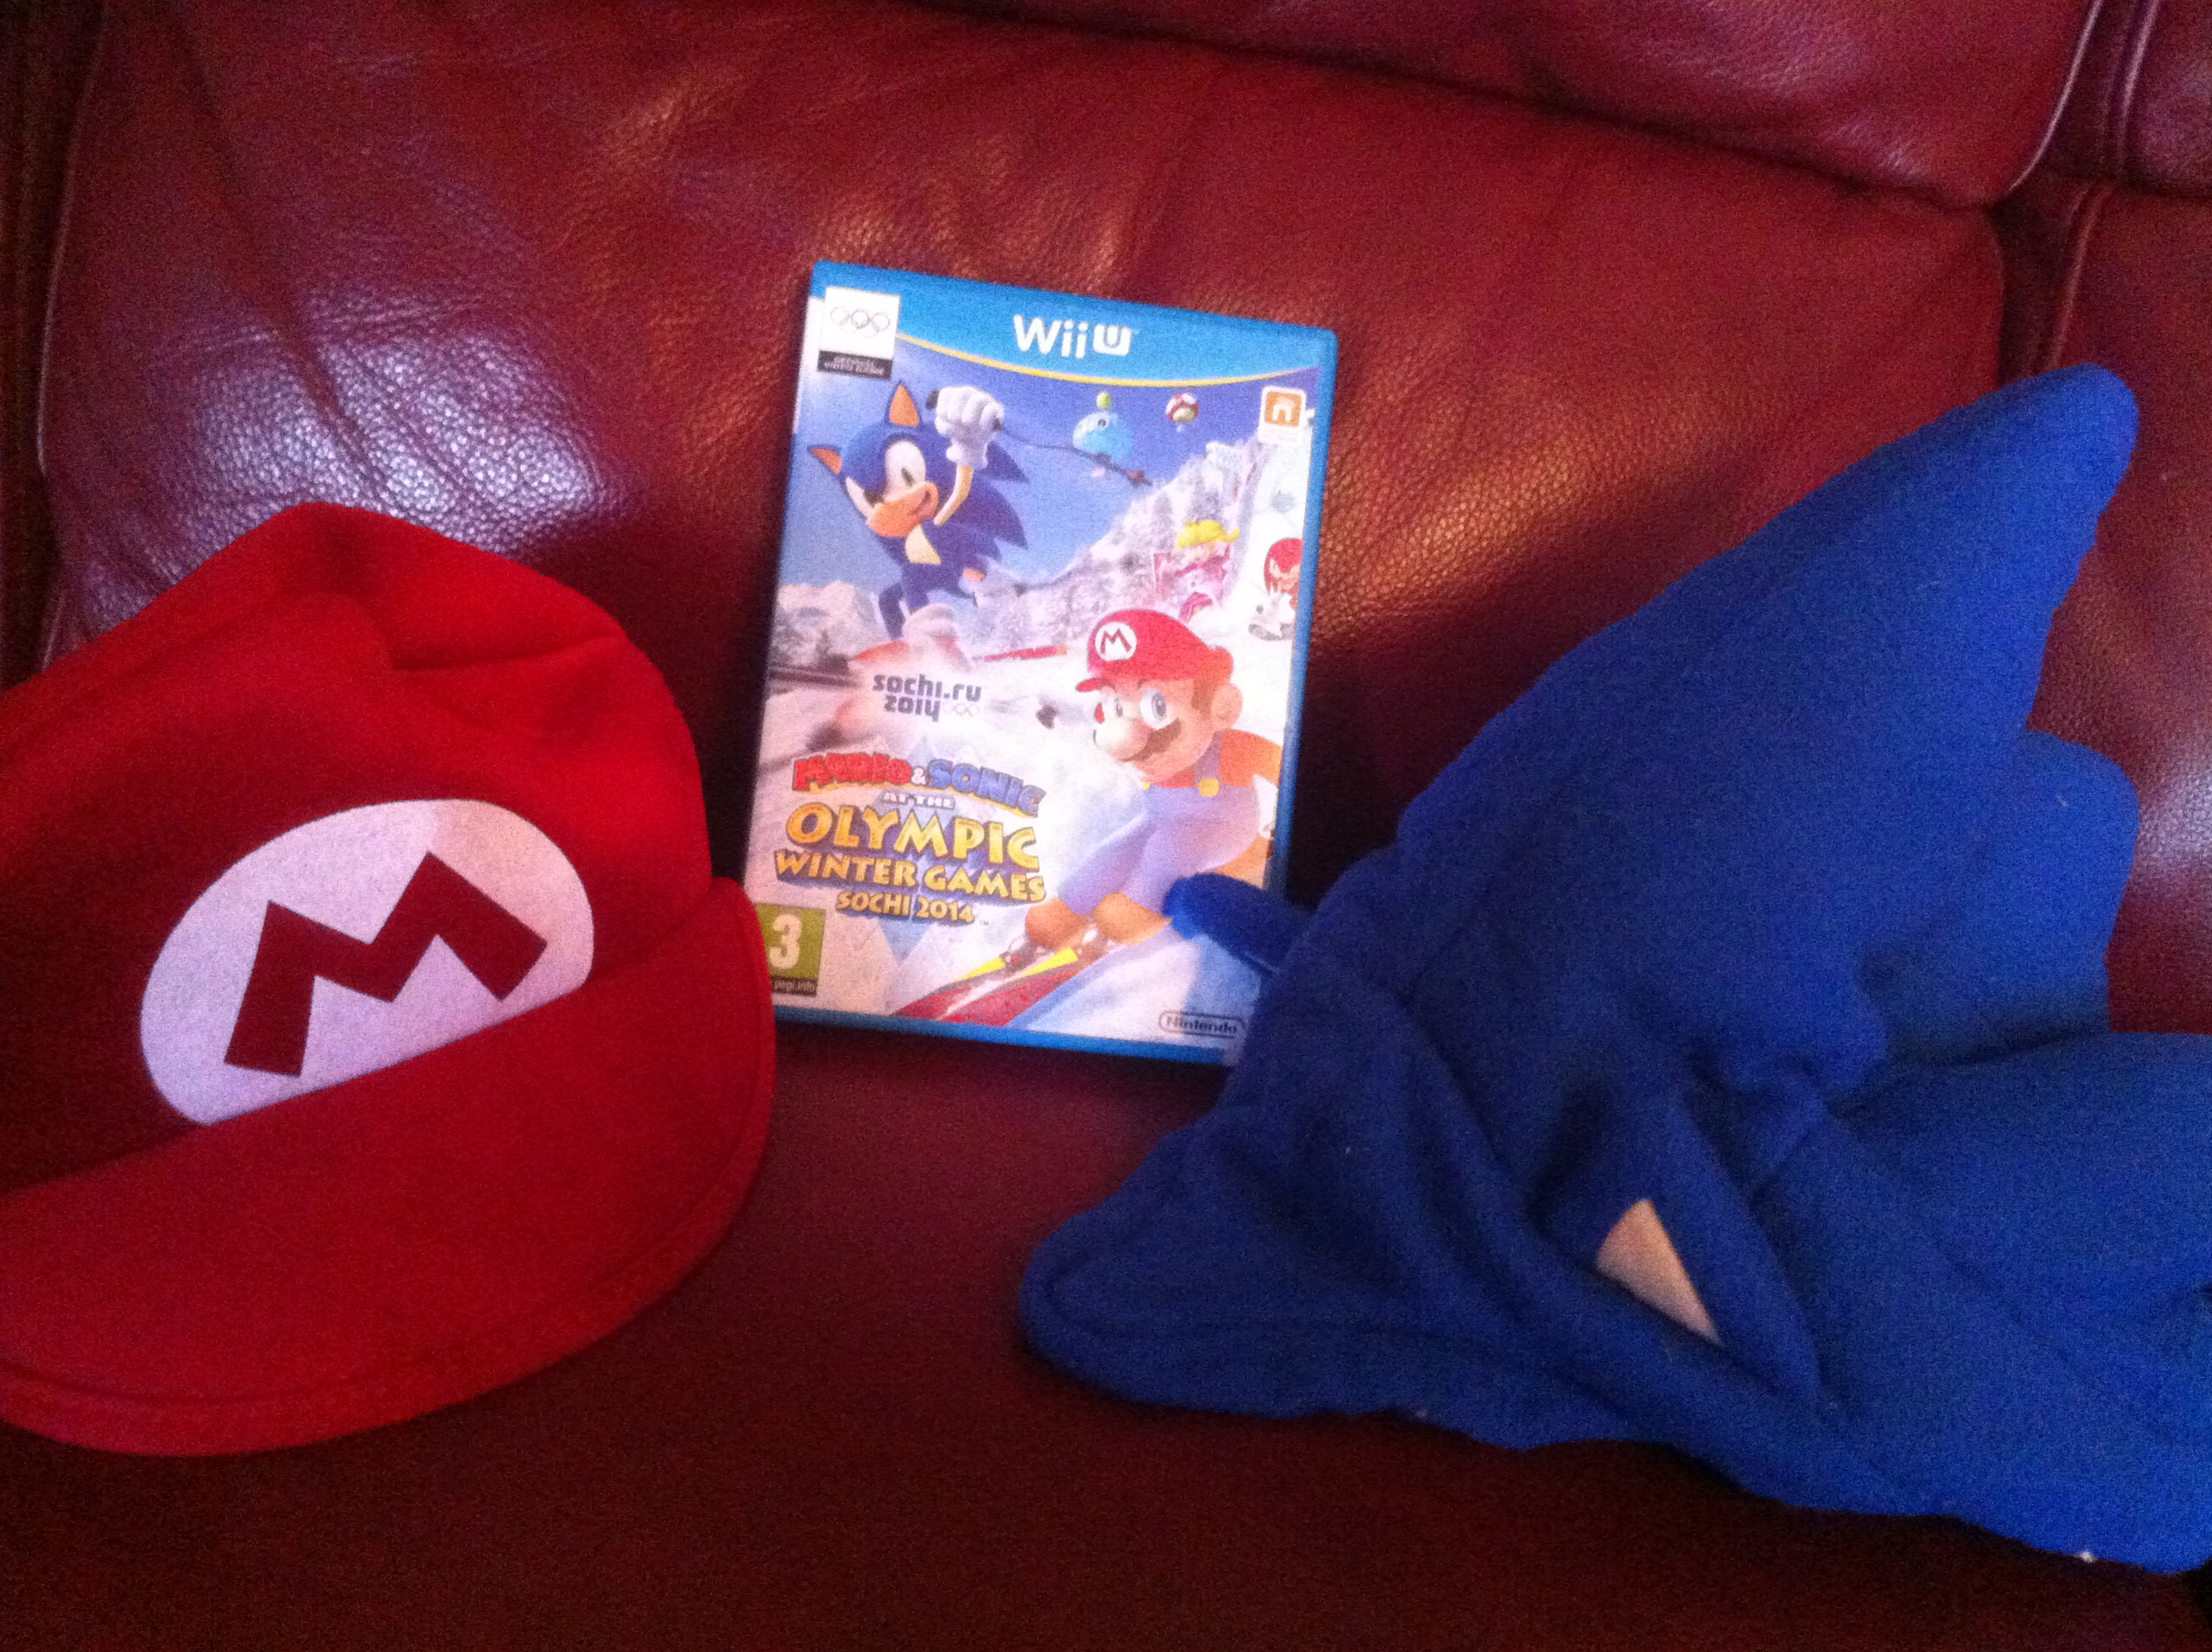 Wii U: Mario & Sonic at the Olympic Winter Games Sochi 2014